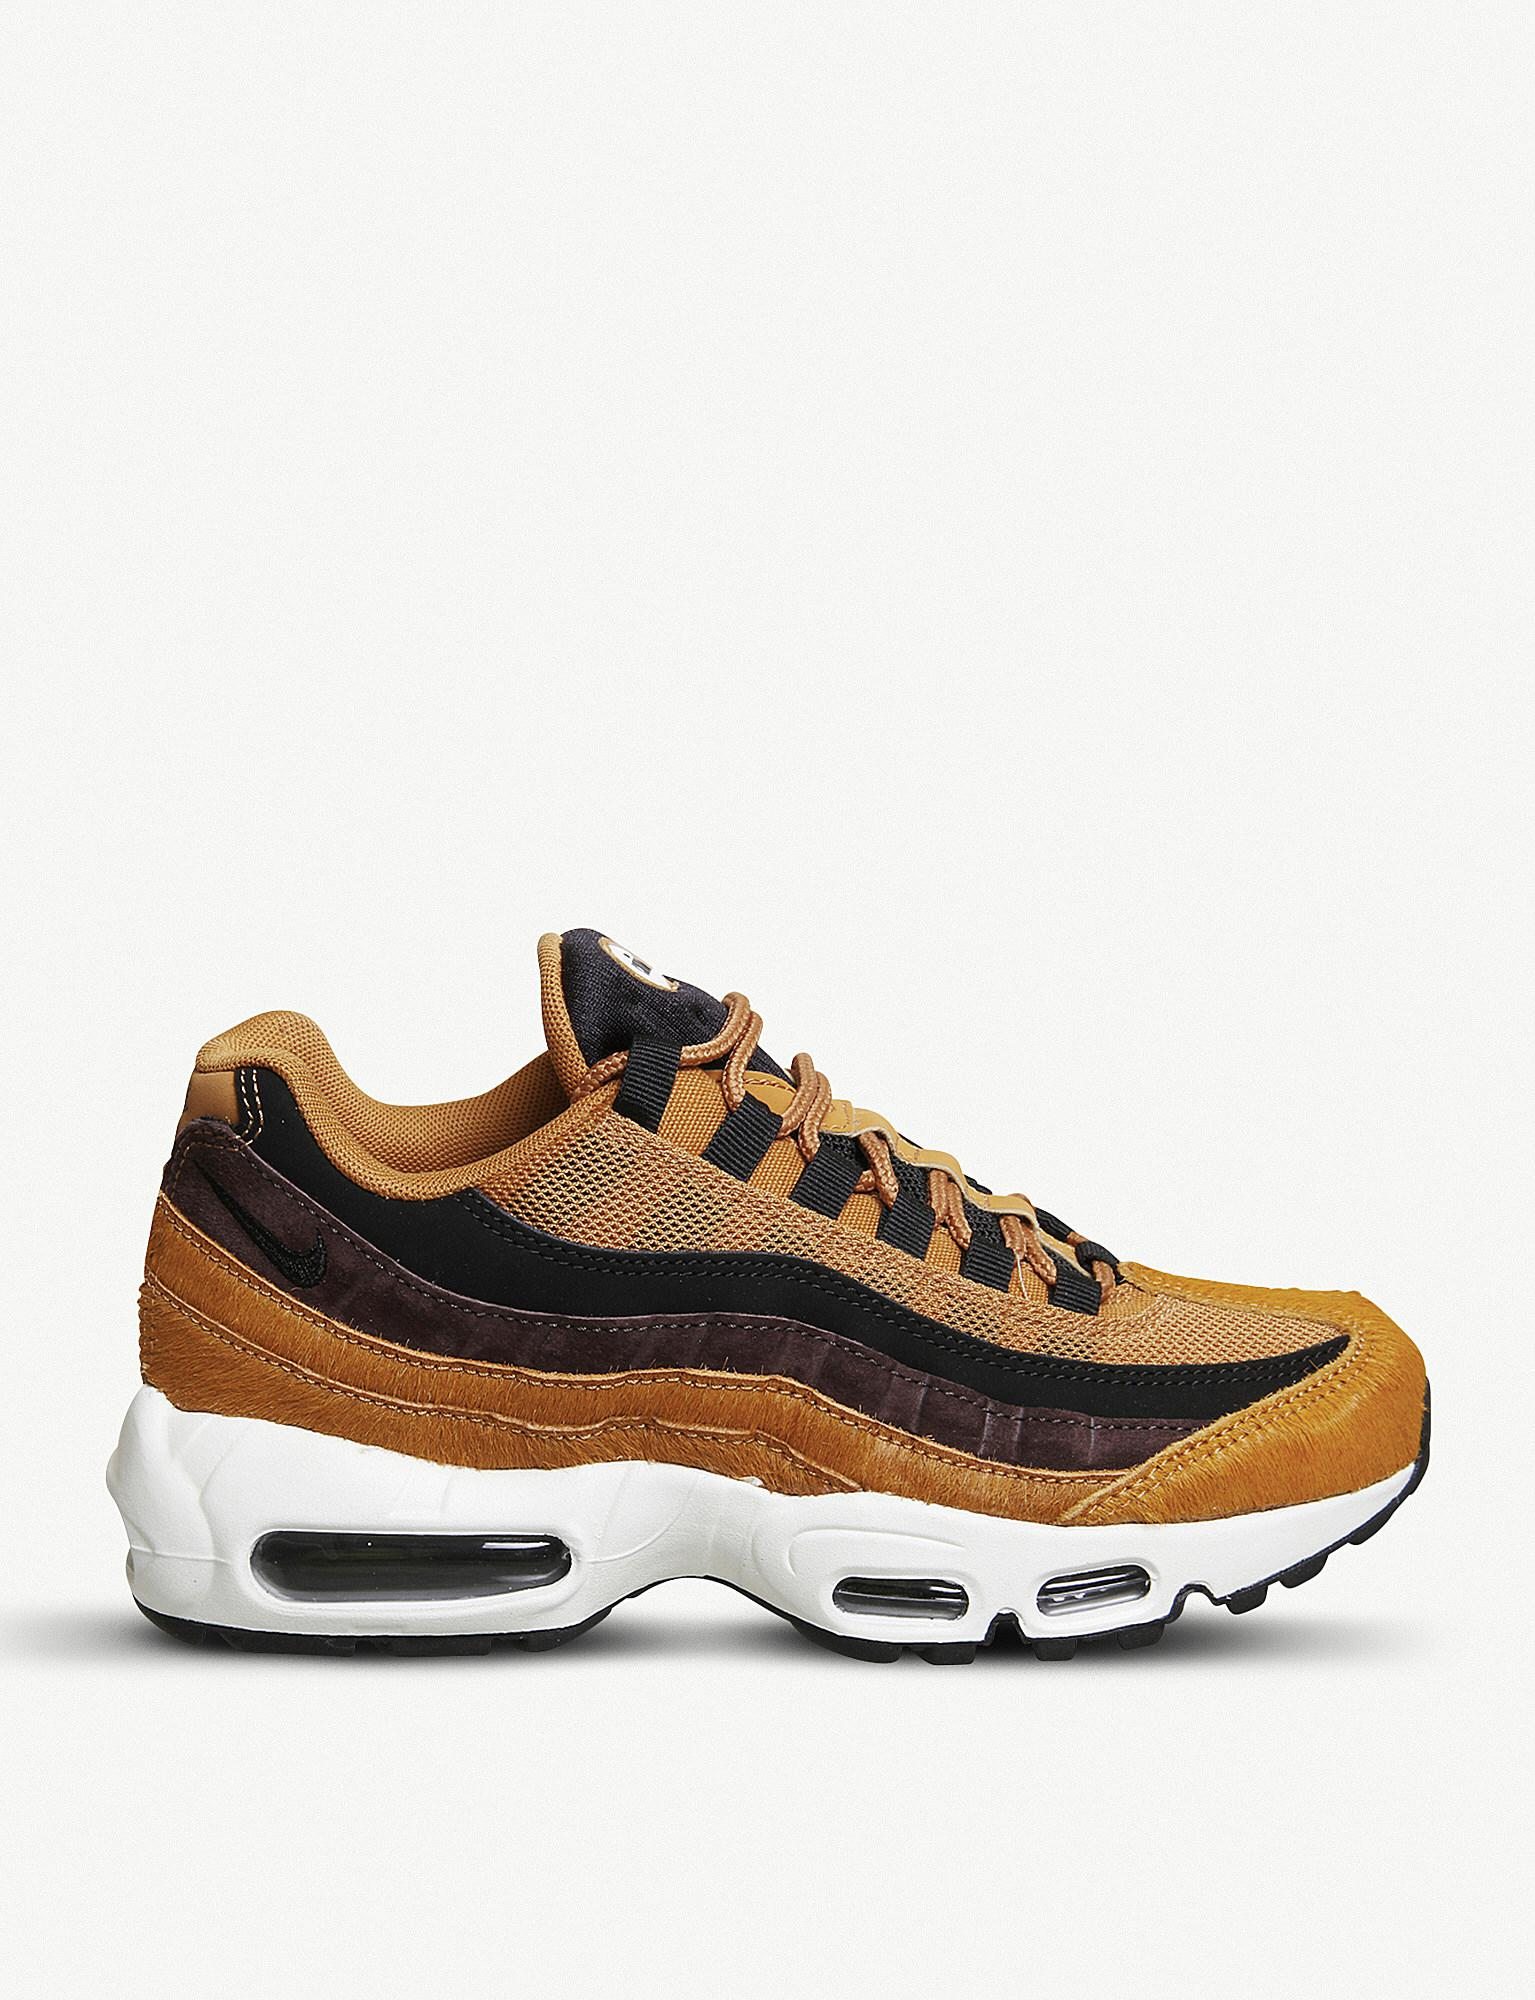 95 Air Brown And In Nike Suede Max Ponyhair Lyst Trainers qtaRw4xz